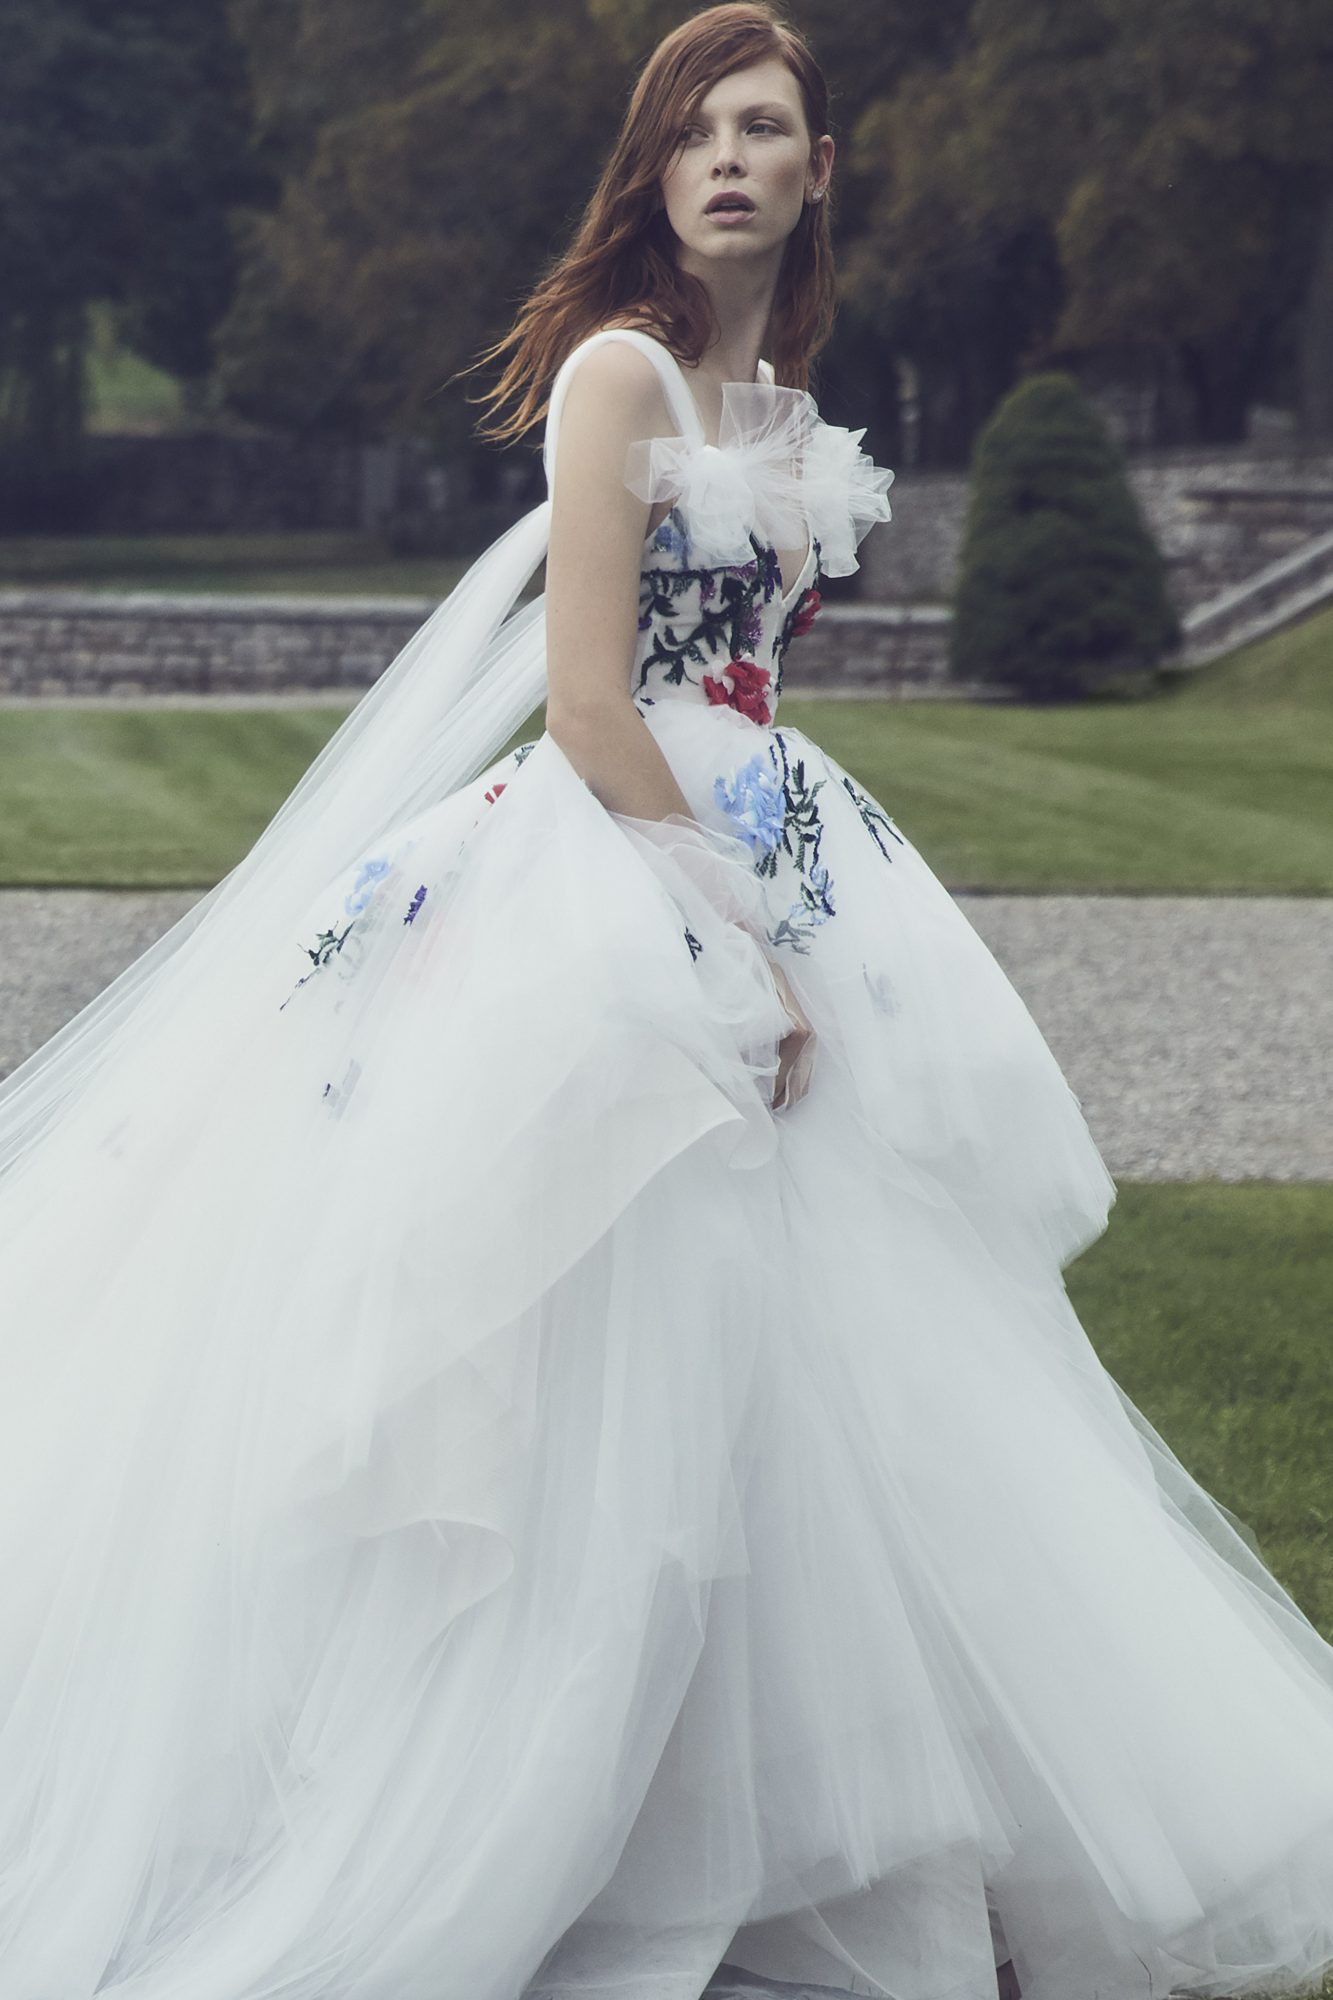 monique lhuillier fall 2019 v-neck ballgown with colorful floral applique